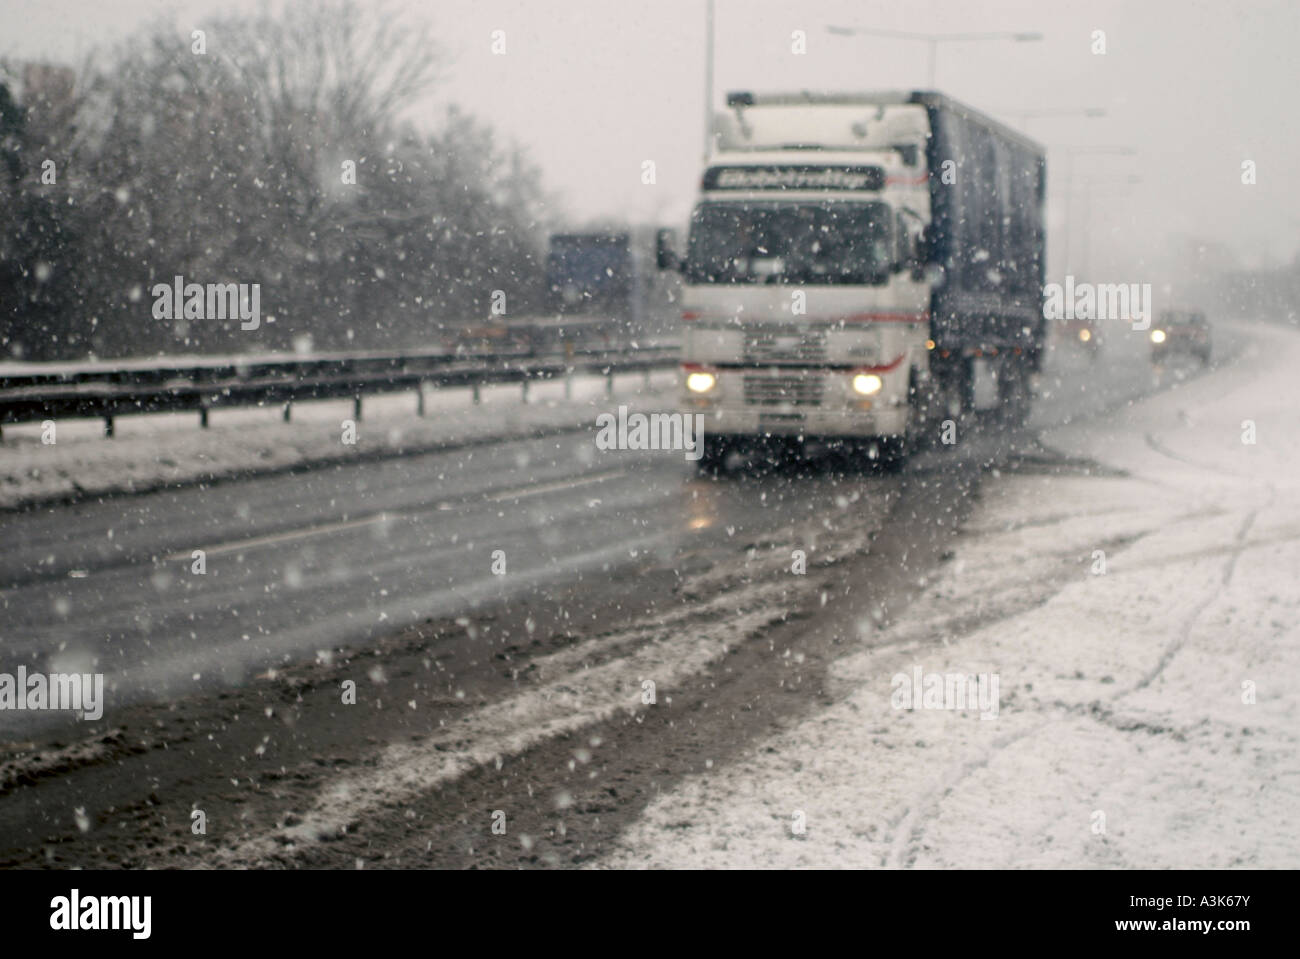 An articulated lorry drives through snow and along a snow covered arterial road. 2018122 235120 23151811 - Stock Image